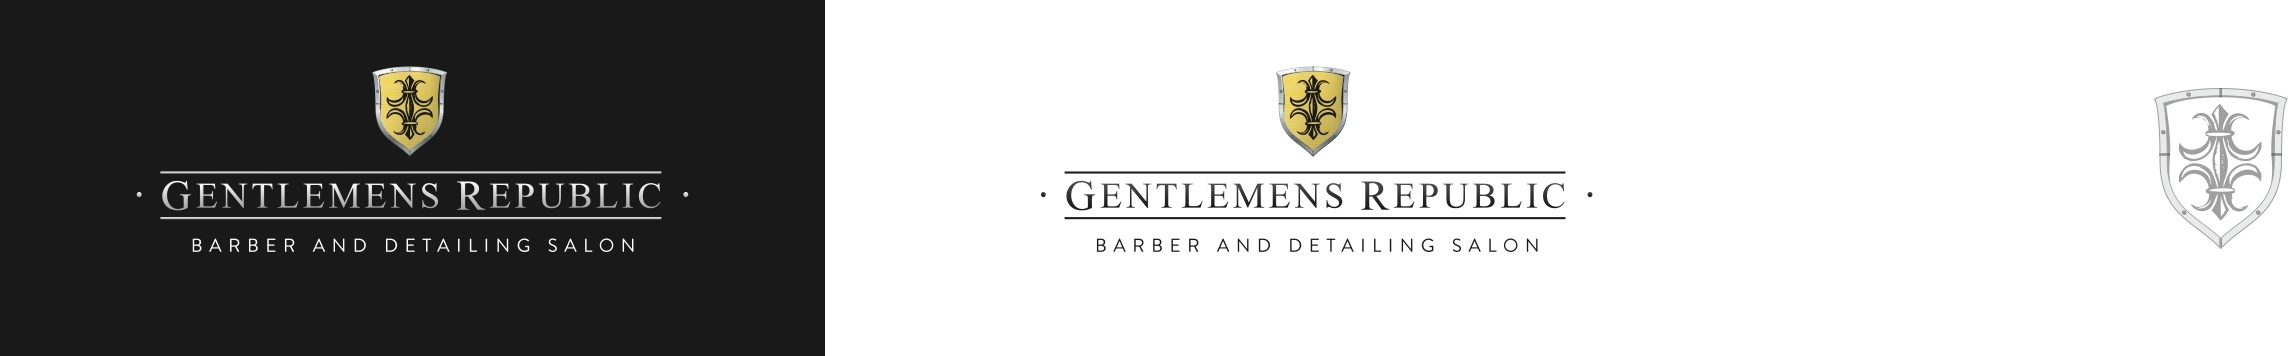 Gentlemens Republic Barber Salon